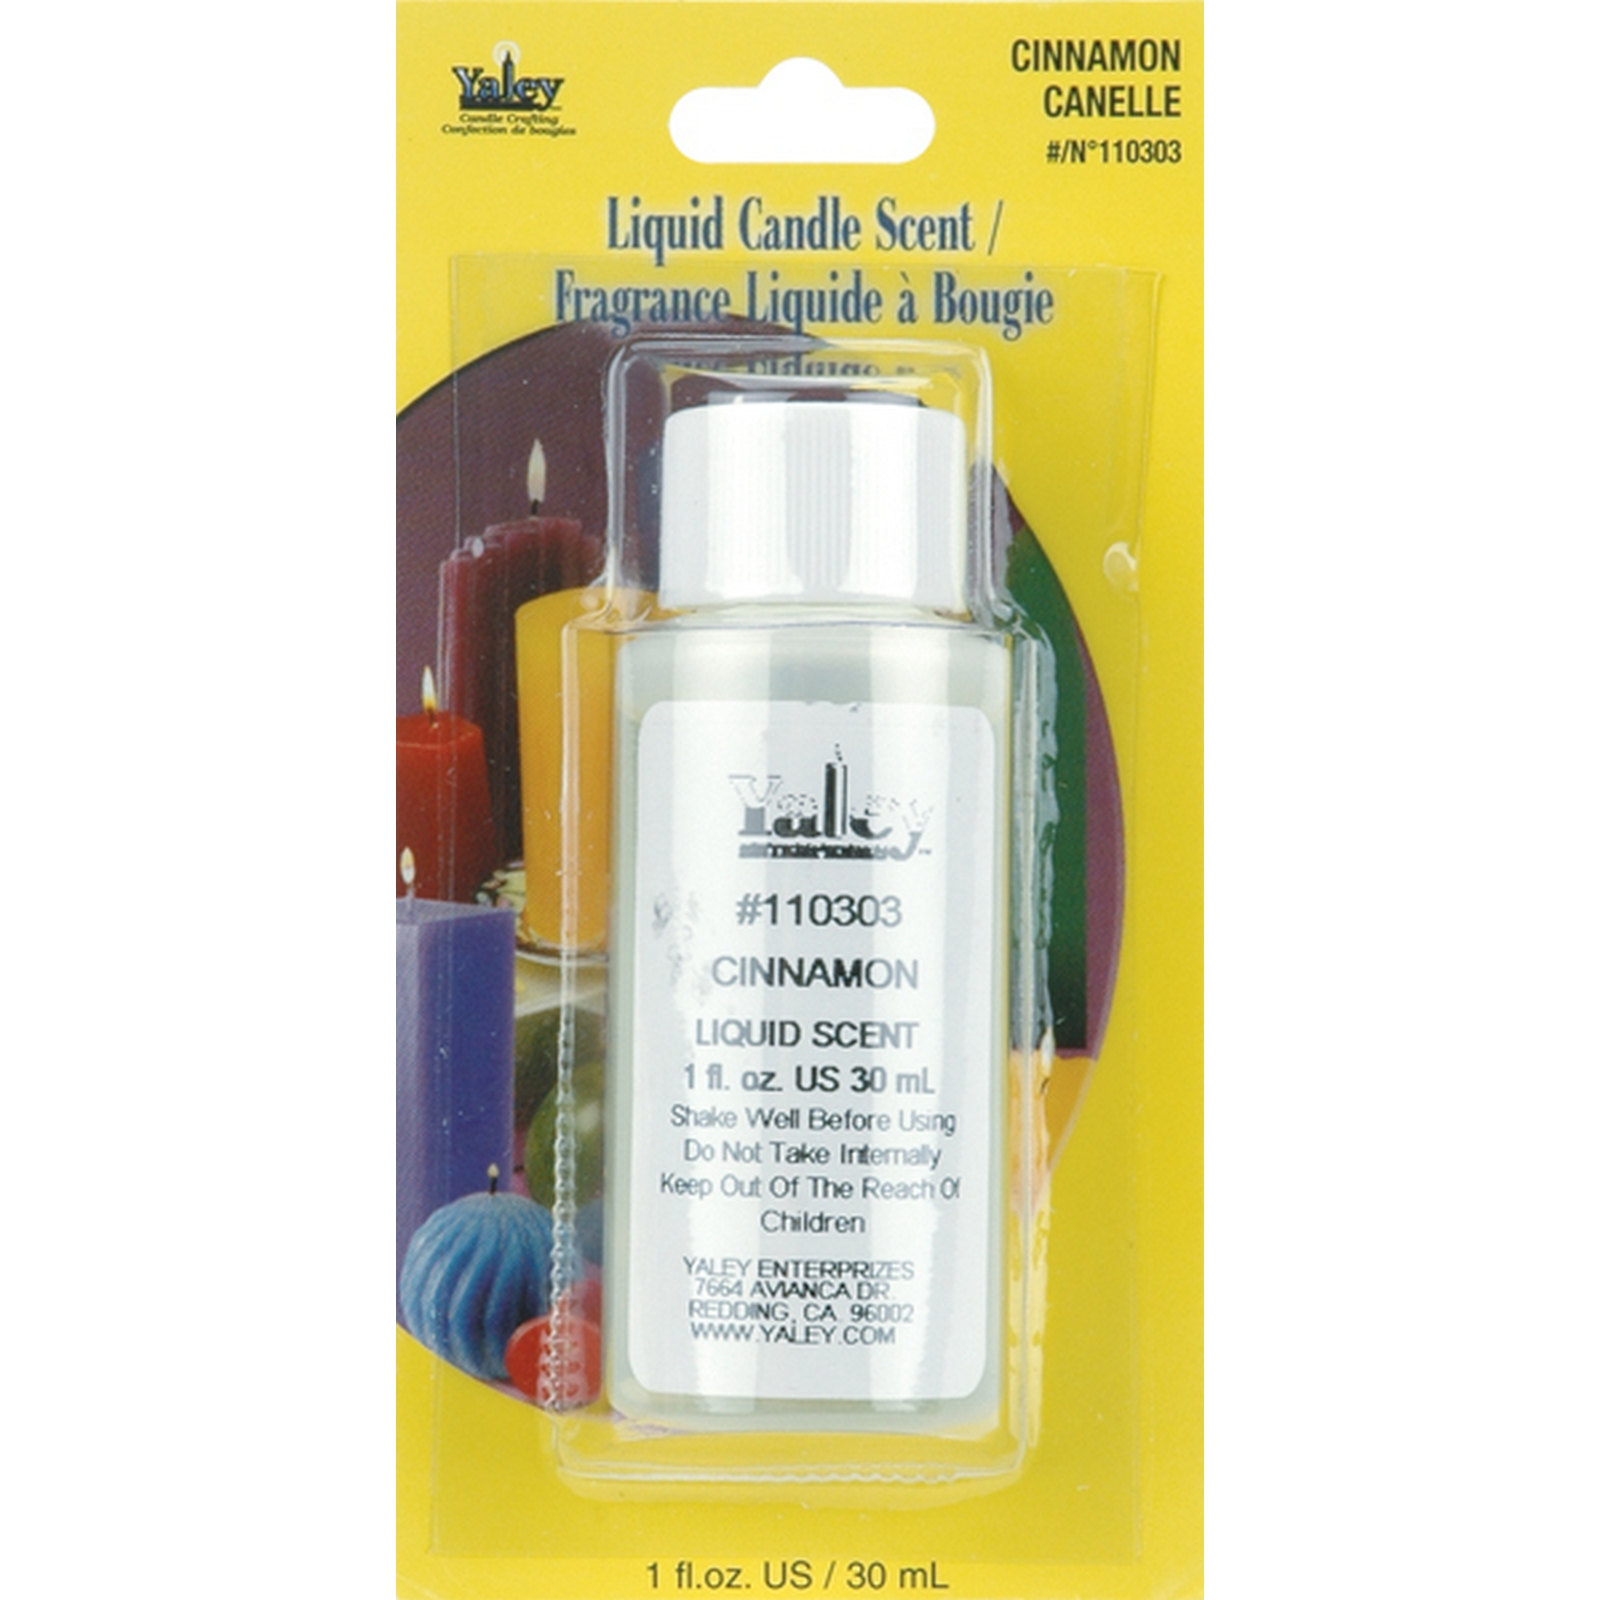 Candle Making Kit Kmart Liquid Candle Scent 1 Ounce Bottle Cinnamon